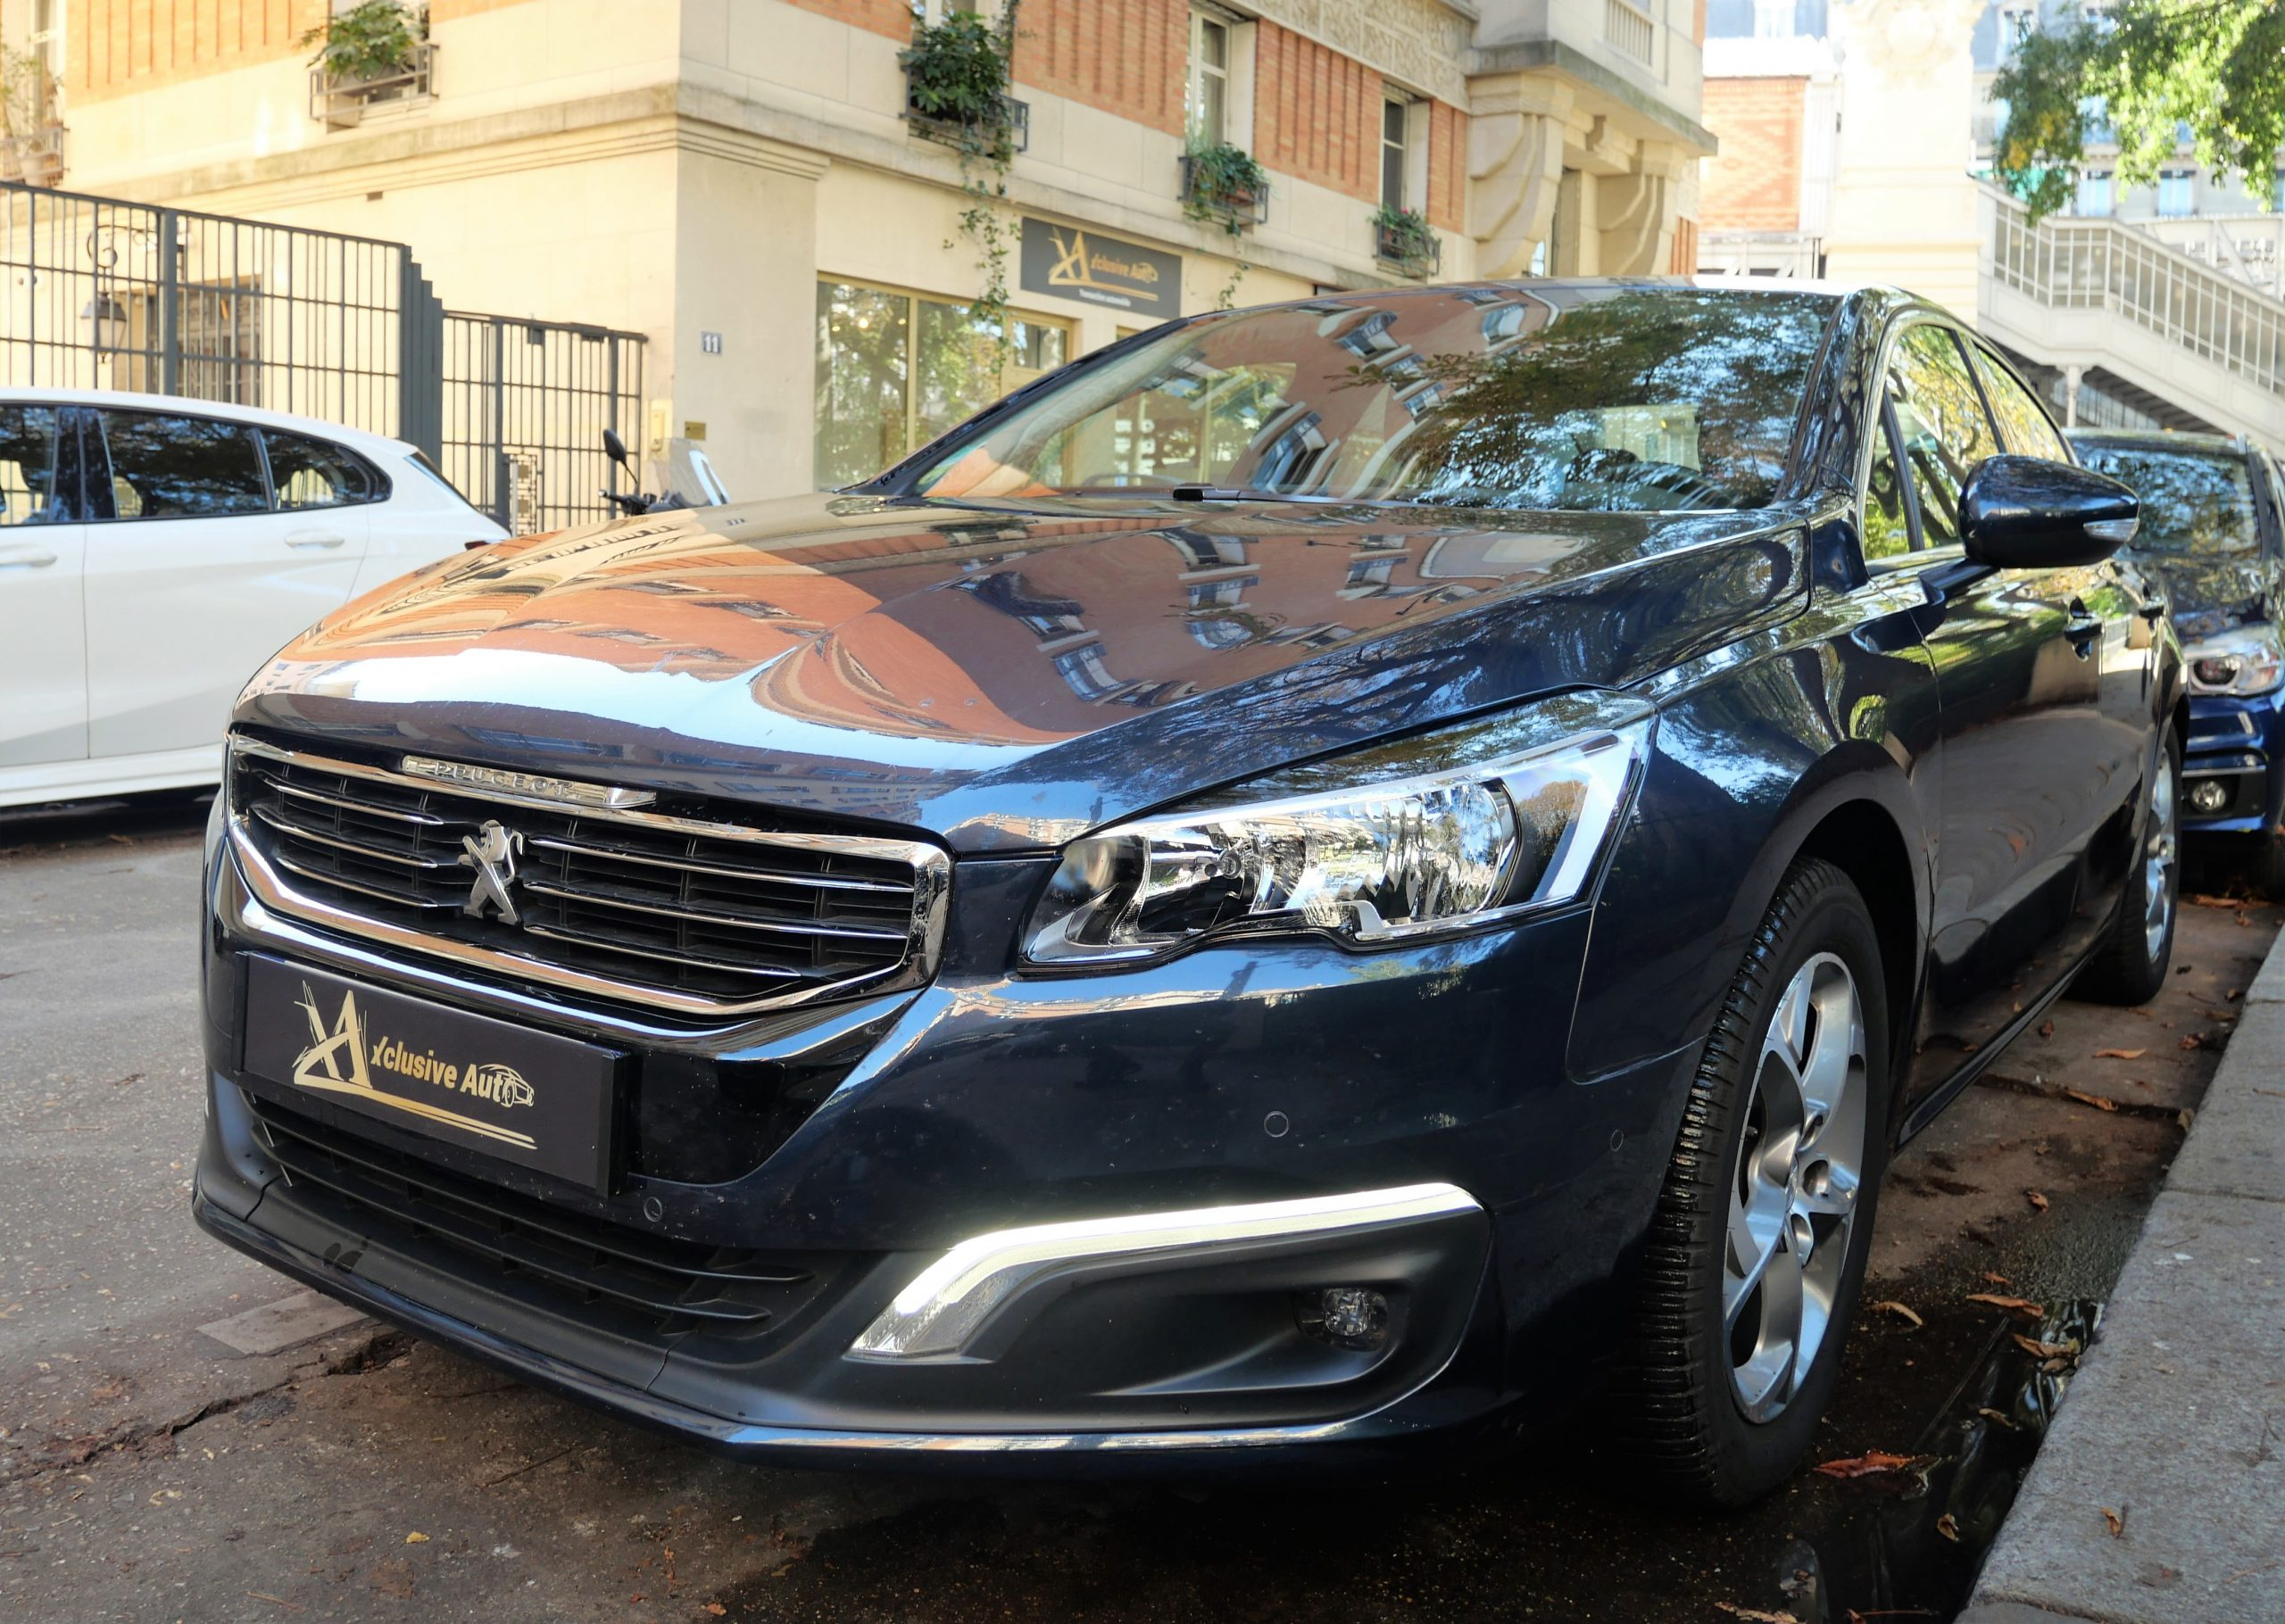 PEUGEOT 508 Allure Phase 2 1.6 BlueHDI S&S 120 ch